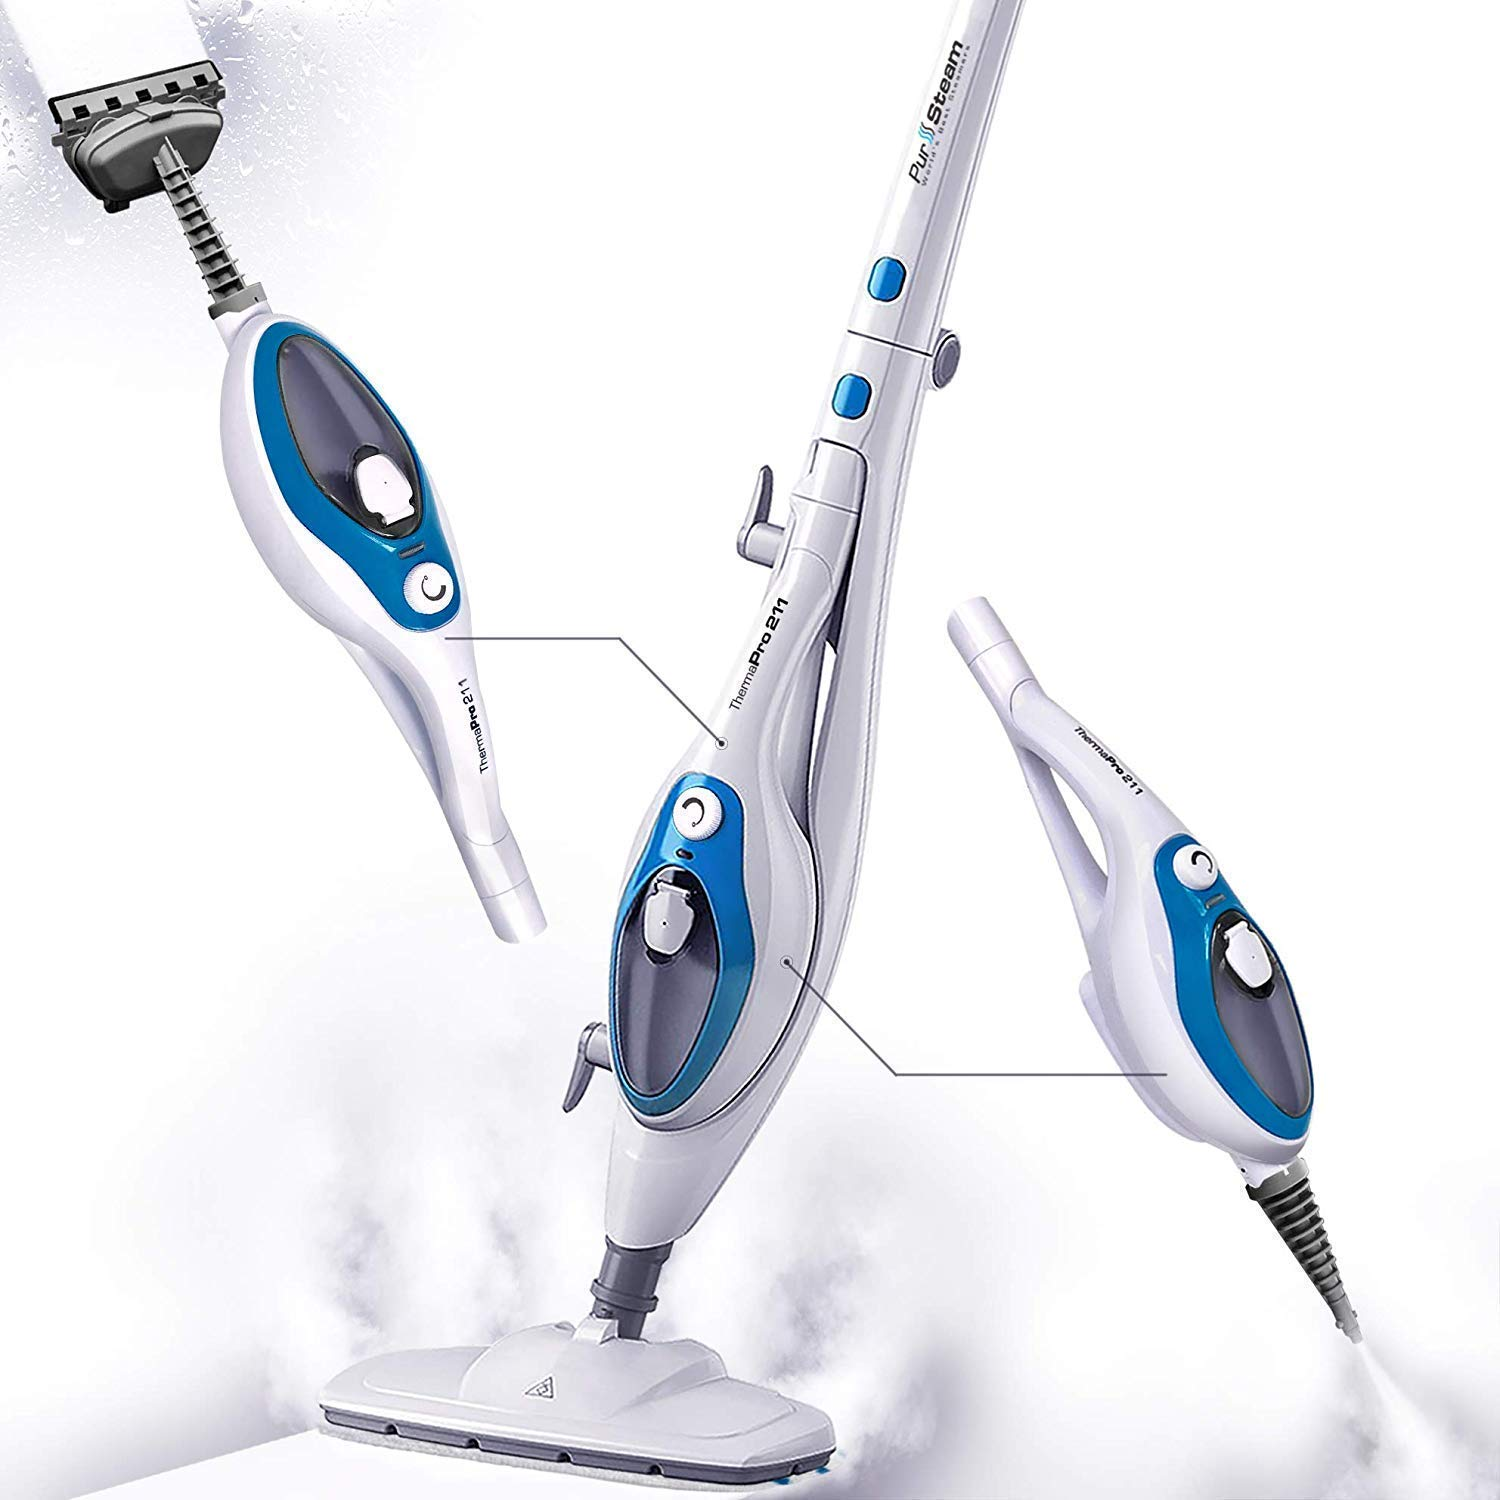 Steam Mop Cleaner ThermaPro 10-in-1 with Convenient Detachable Handheld Unit